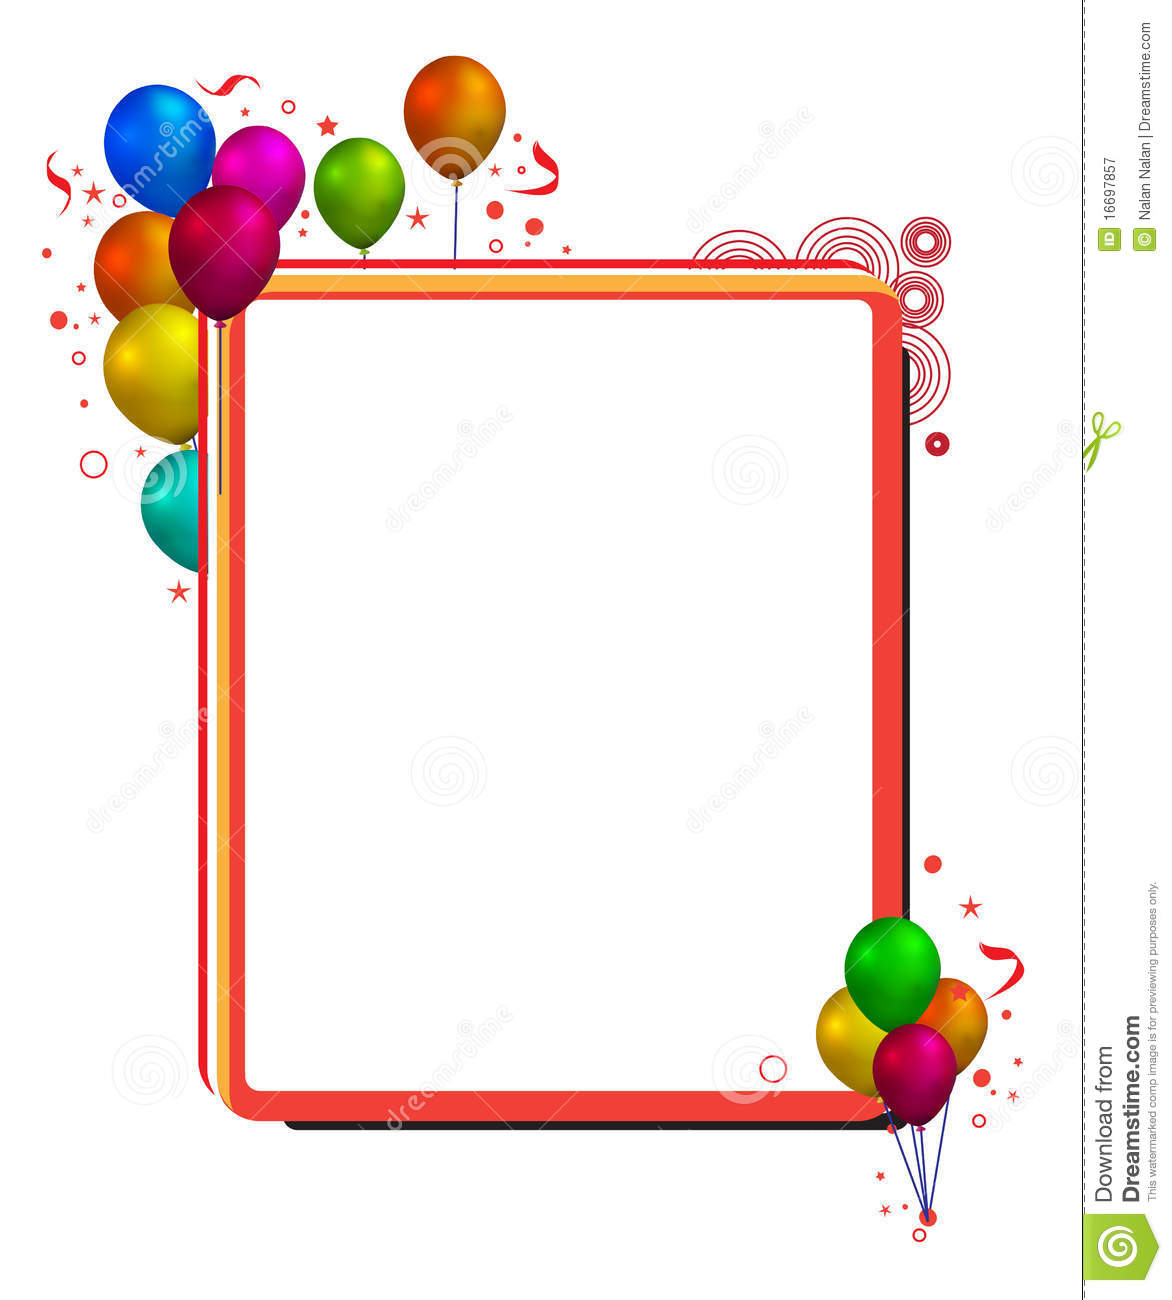 Balloon Frame Royalty Free Stock Photography - Image: 16697857